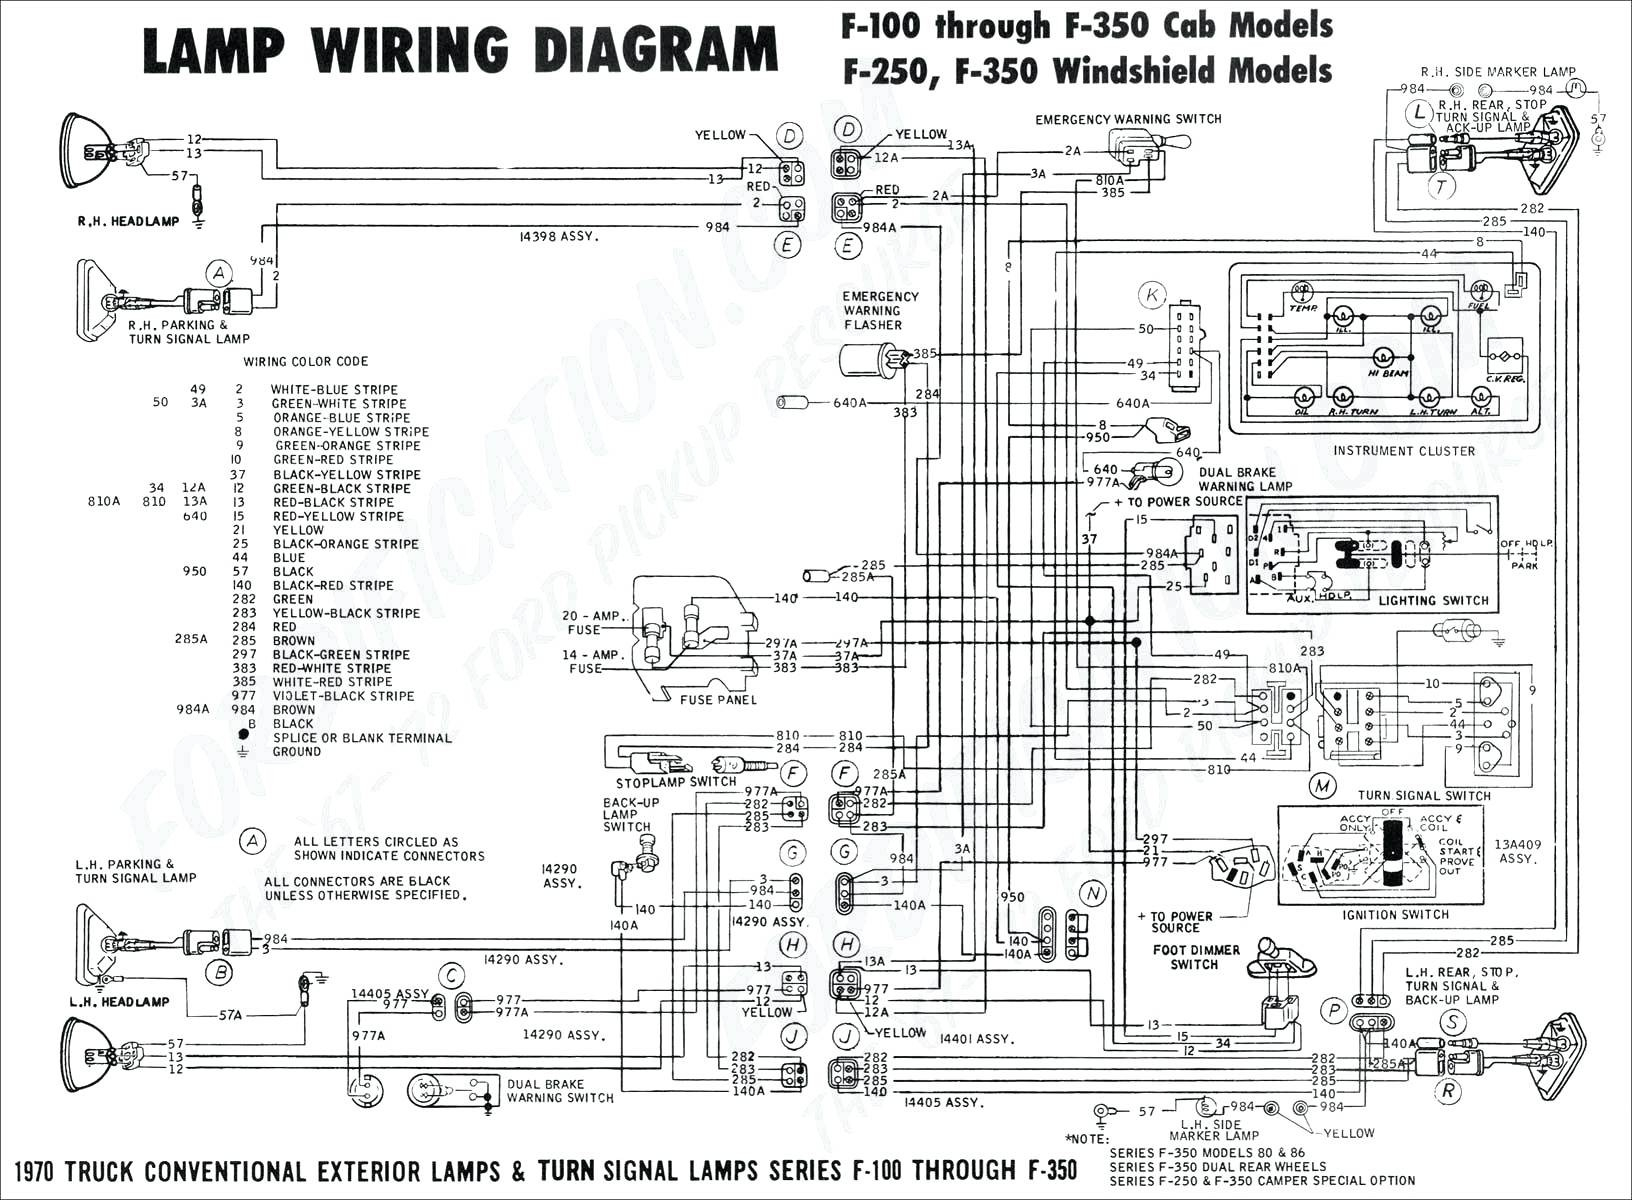 1967 mustang wiring diagram Collection-1967 Ford Mustang Wiring Diagram Diagrams Average Restoration At 9-k